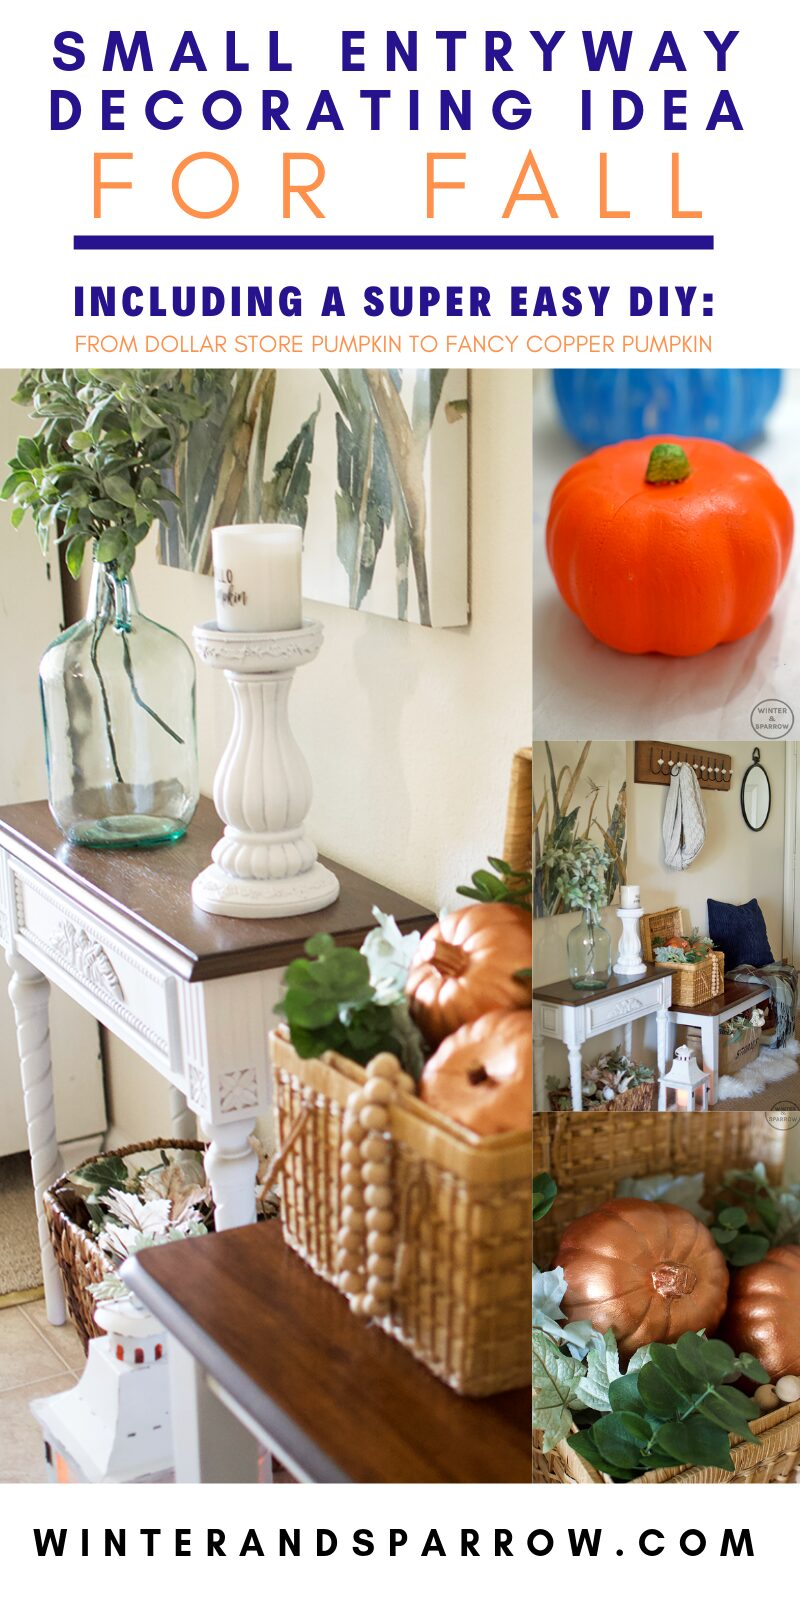 Small Entryway Decorating For Fall + How To Transform A Dollar Store Pumpkin Into A Fancy Copper Pumpkin | winterandsparrow.com #decoratingforfall #copperpumpkin #metalliccopper #thriftstoreshopping